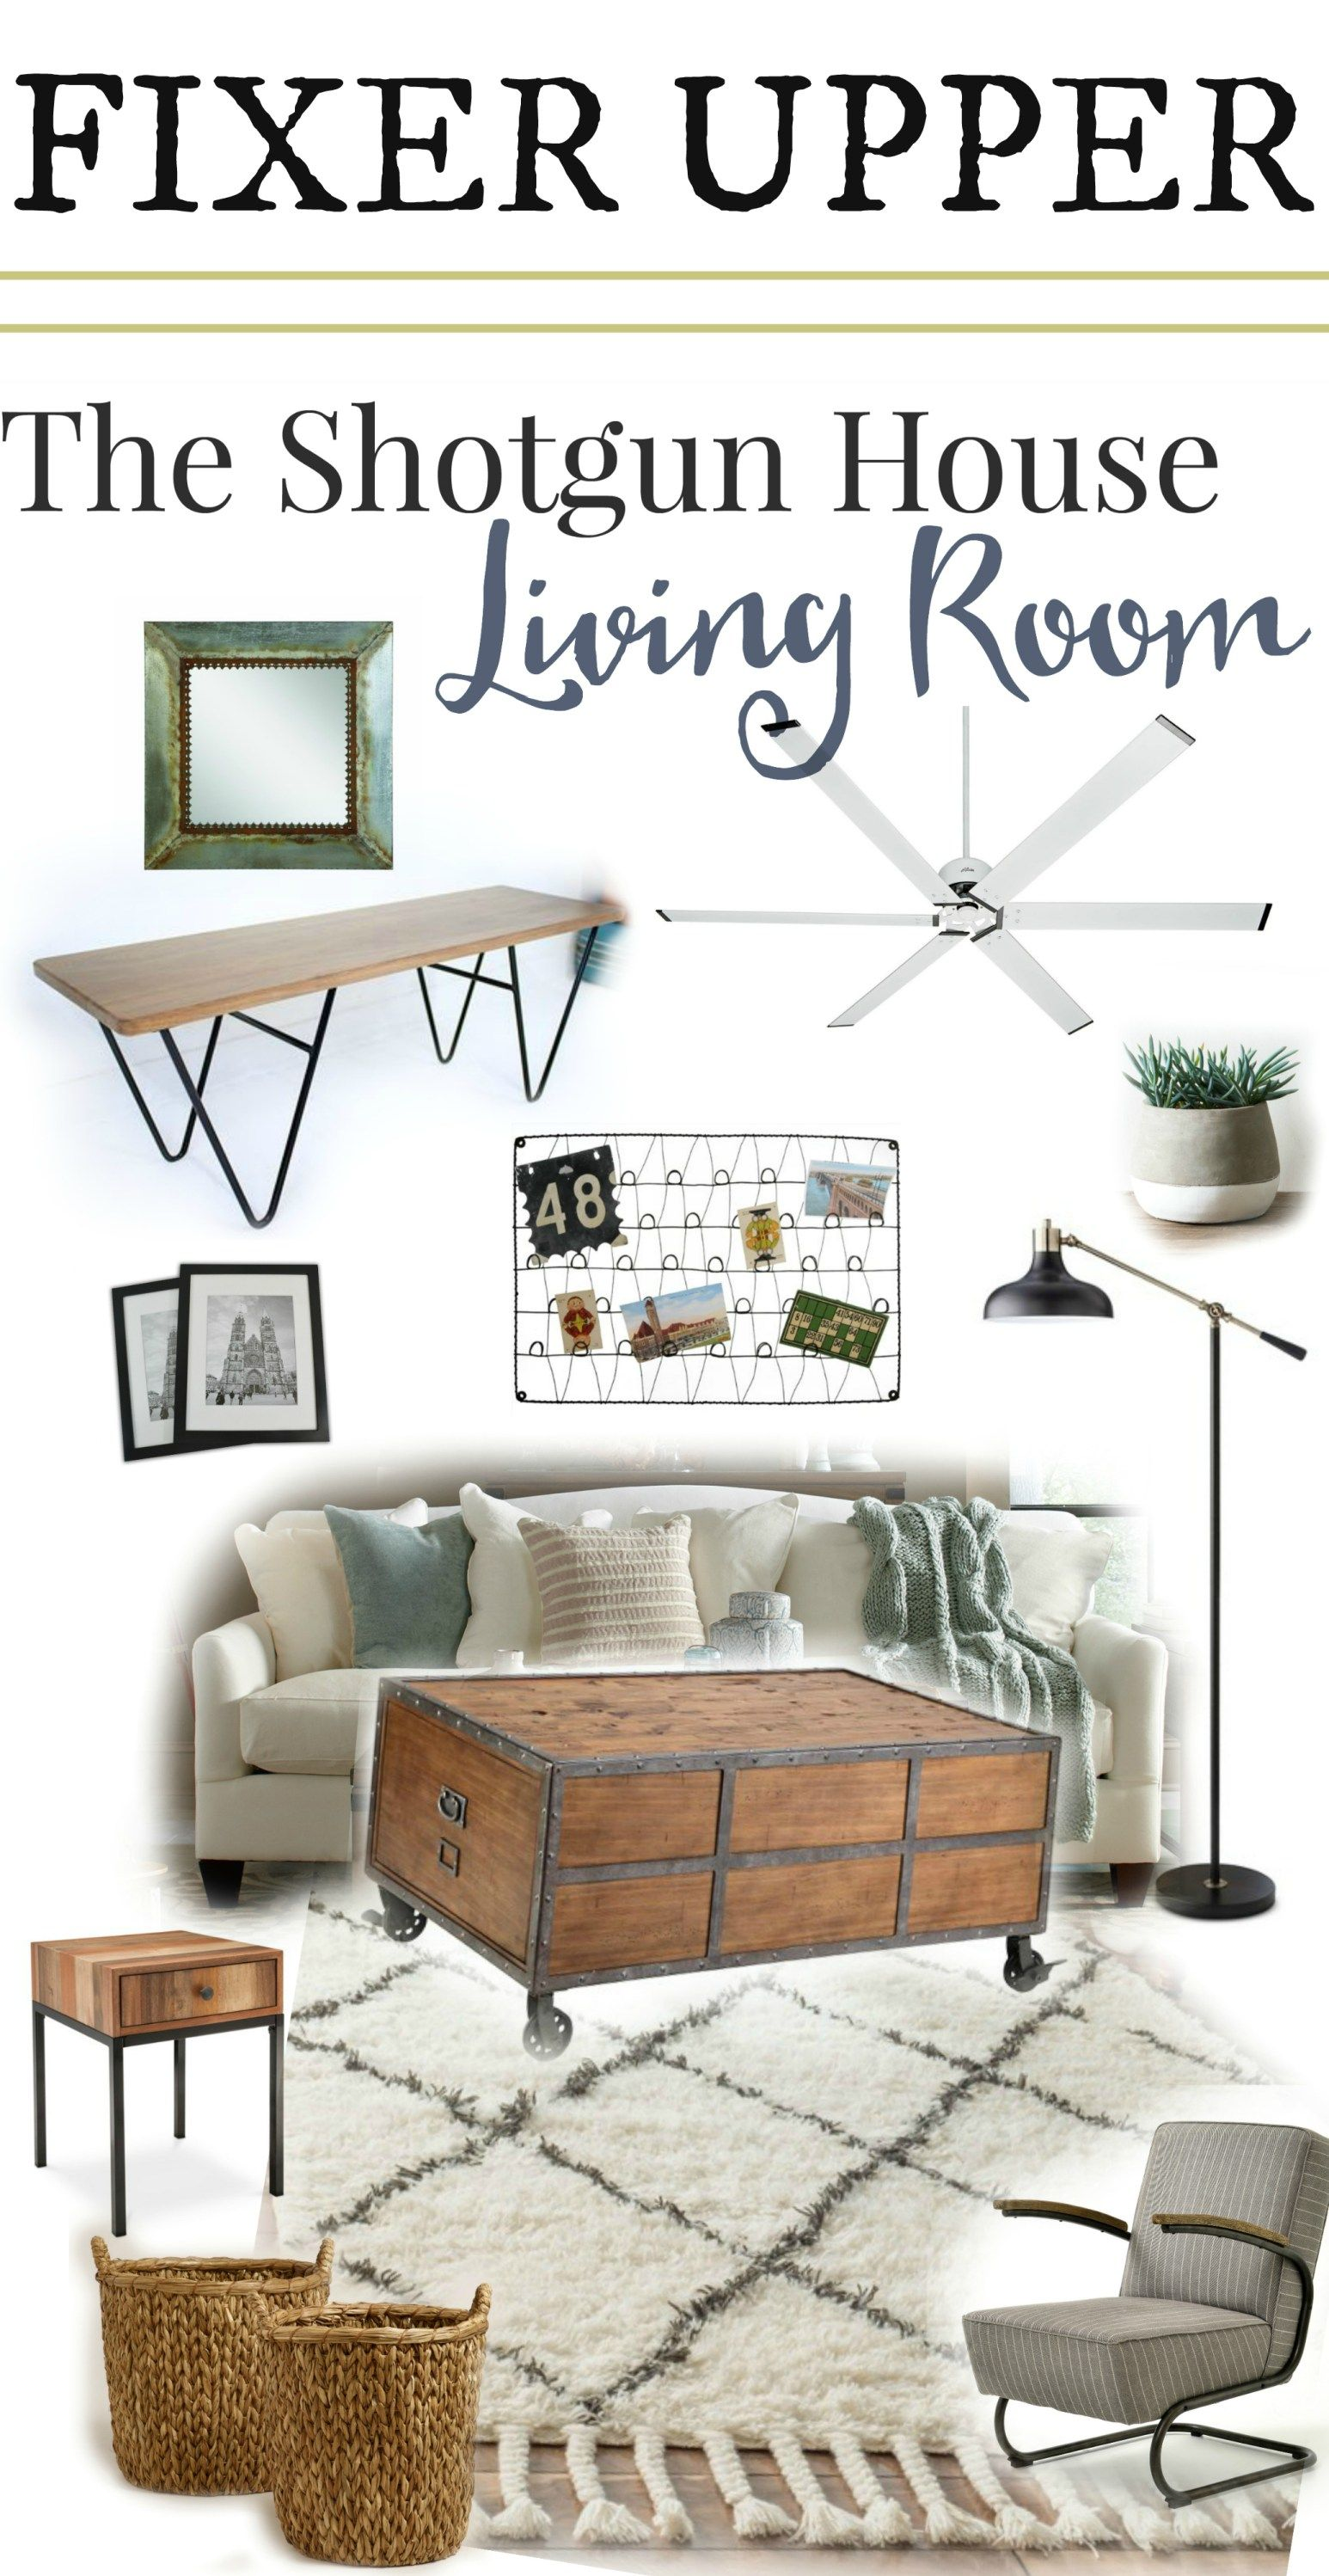 Living Room Furniture List Fixer Upper The Shotgun House Living Room The Most Complete